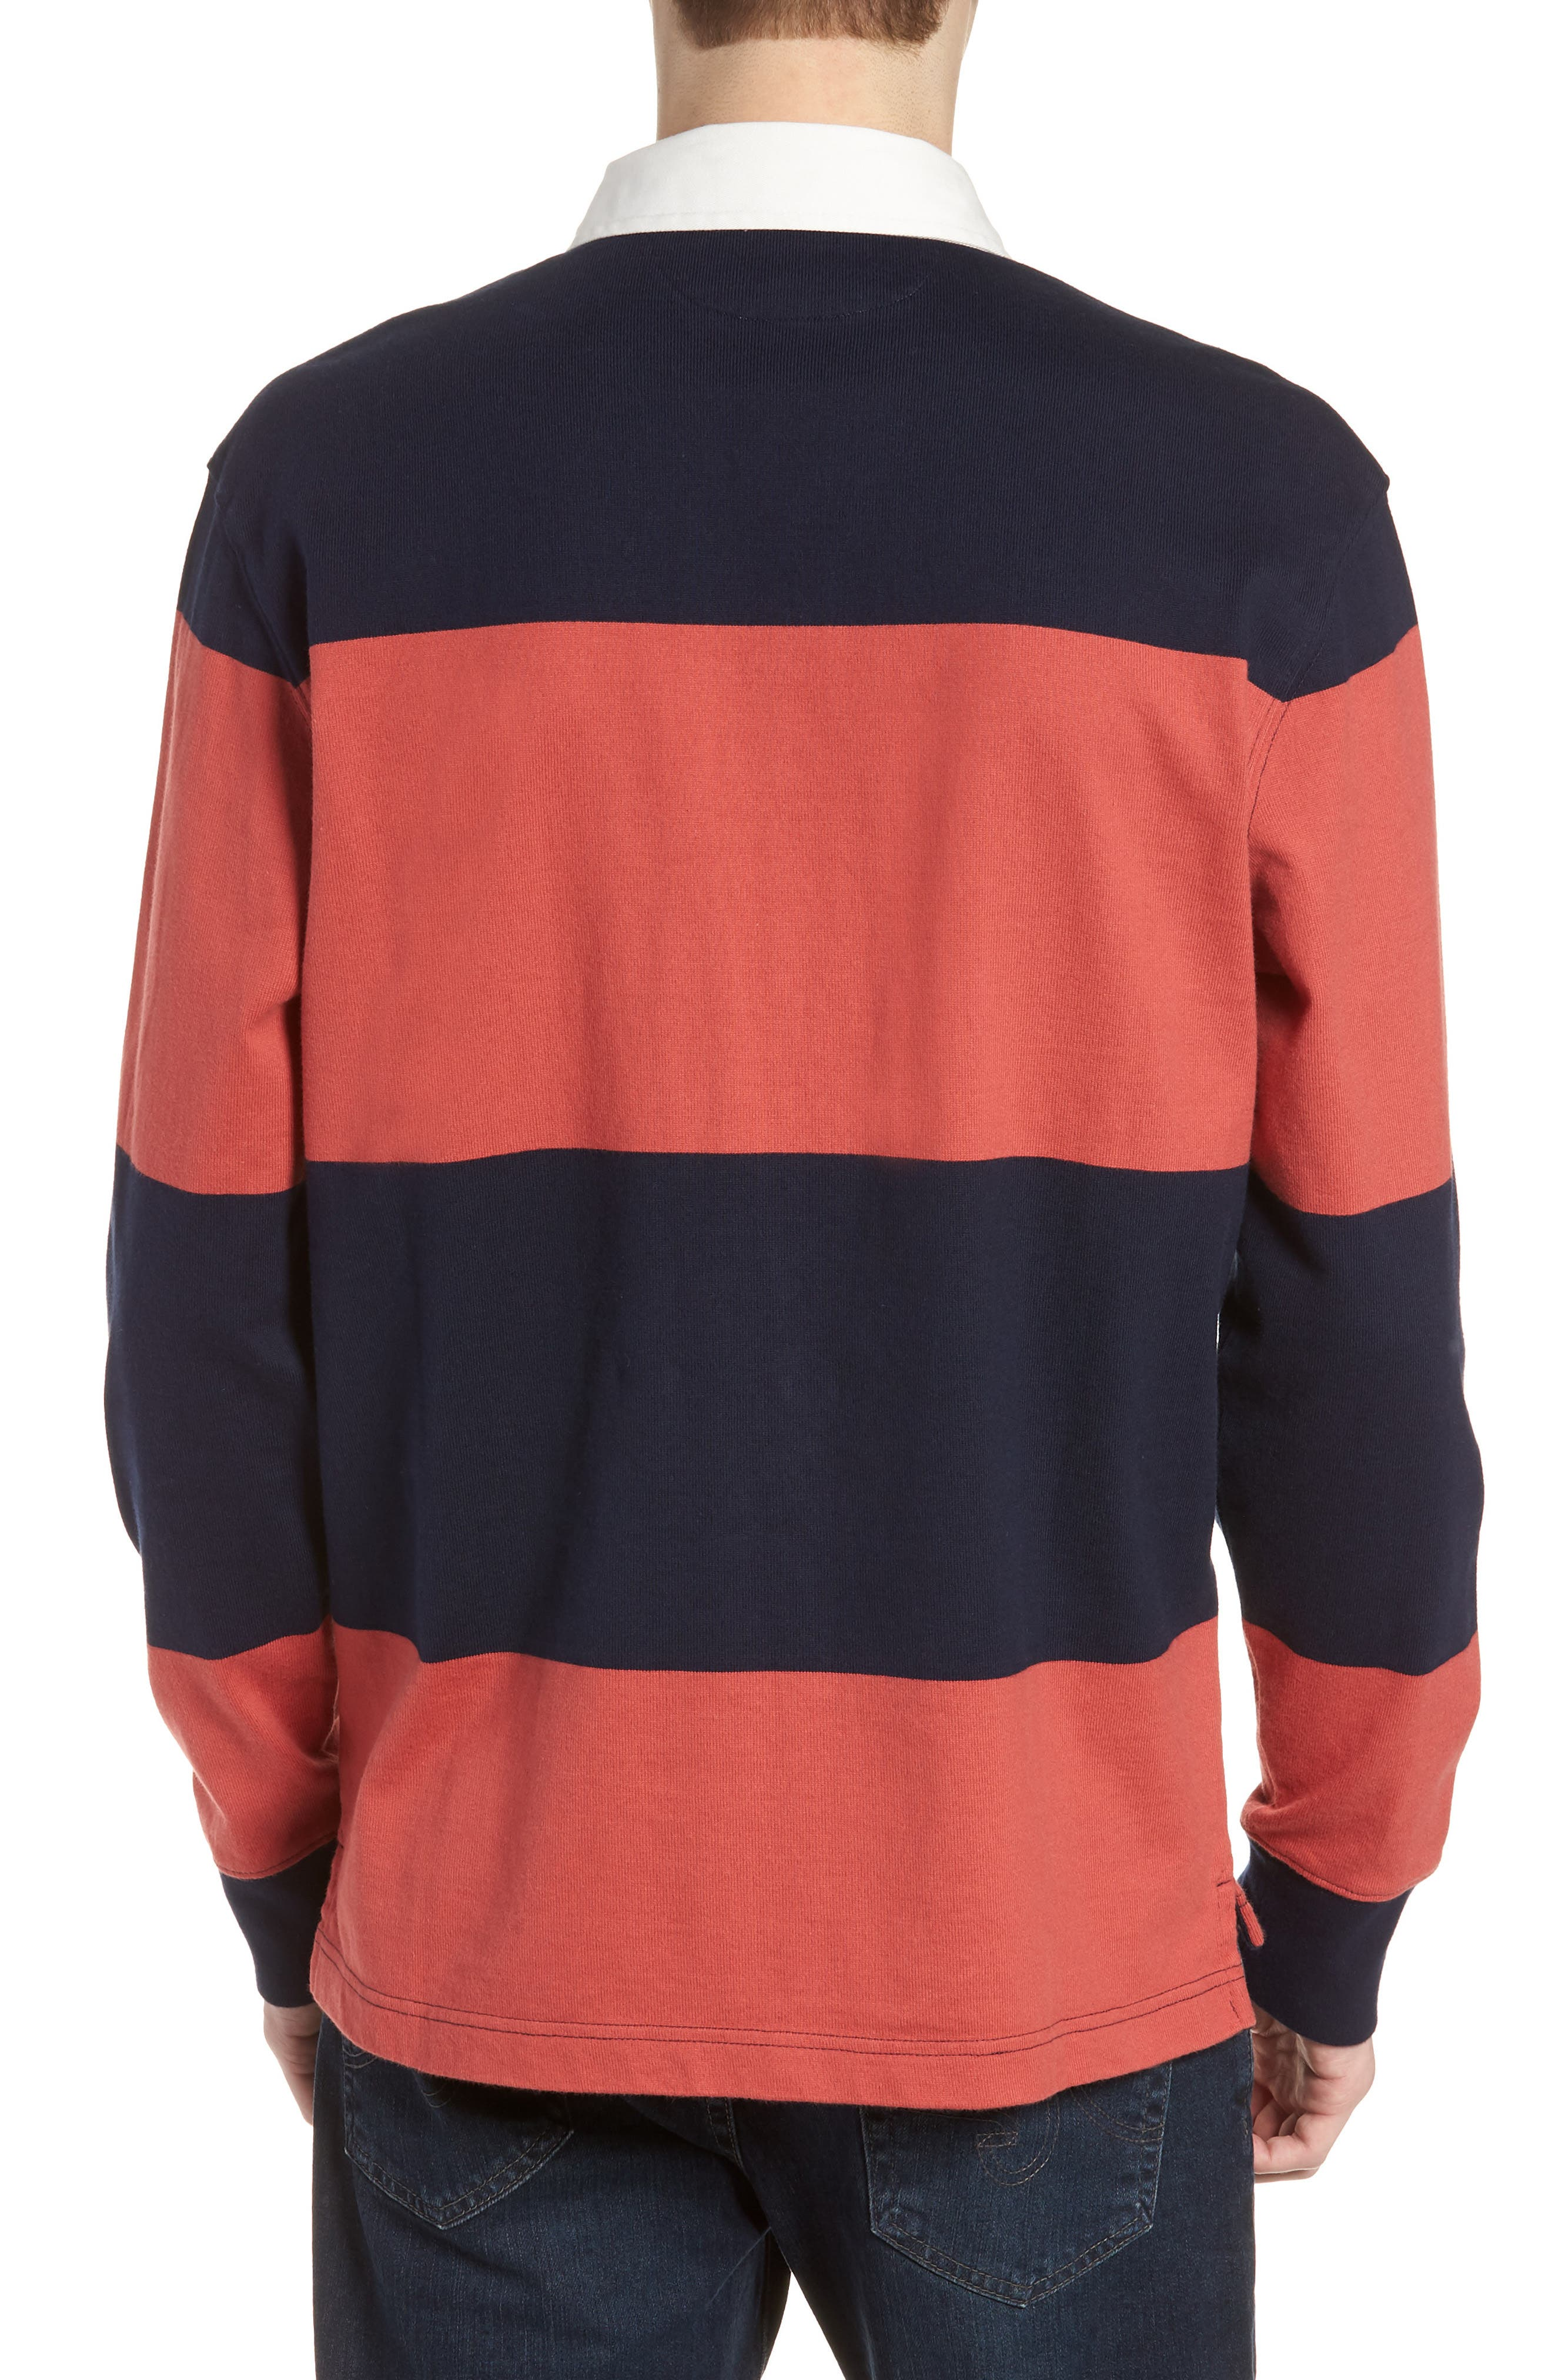 1984 Stripe Rugby Shirt,                             Alternate thumbnail 2, color,                             Old Red